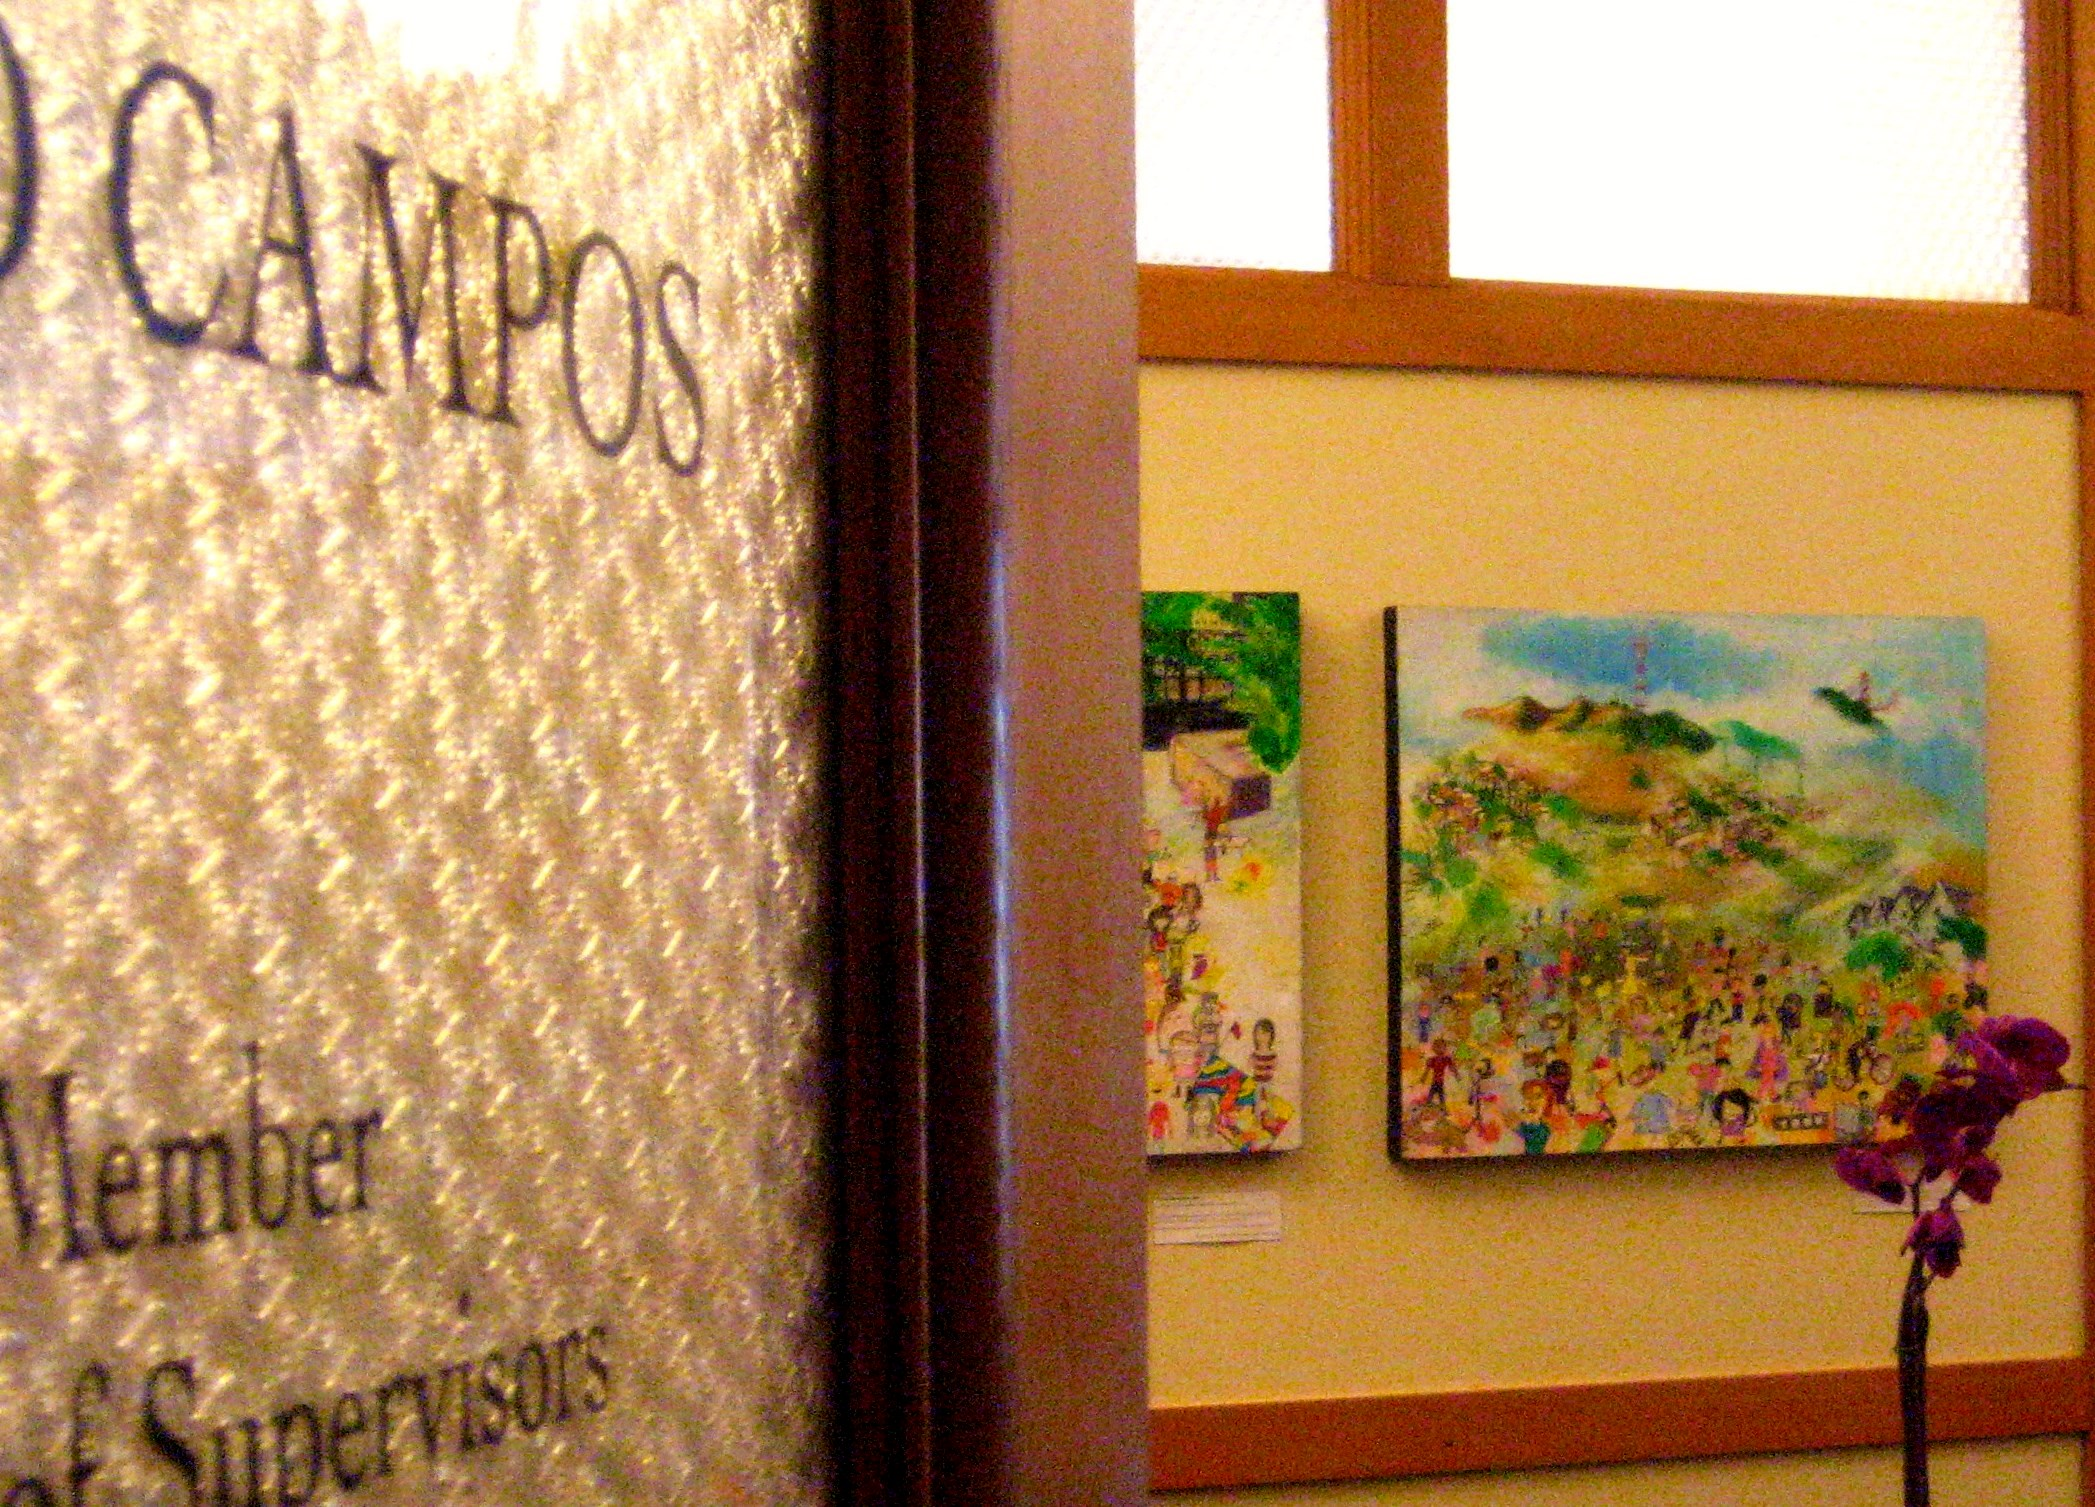 Today: Opening Reception for Bernal Artist in City Hall Office of Supervisor Campos